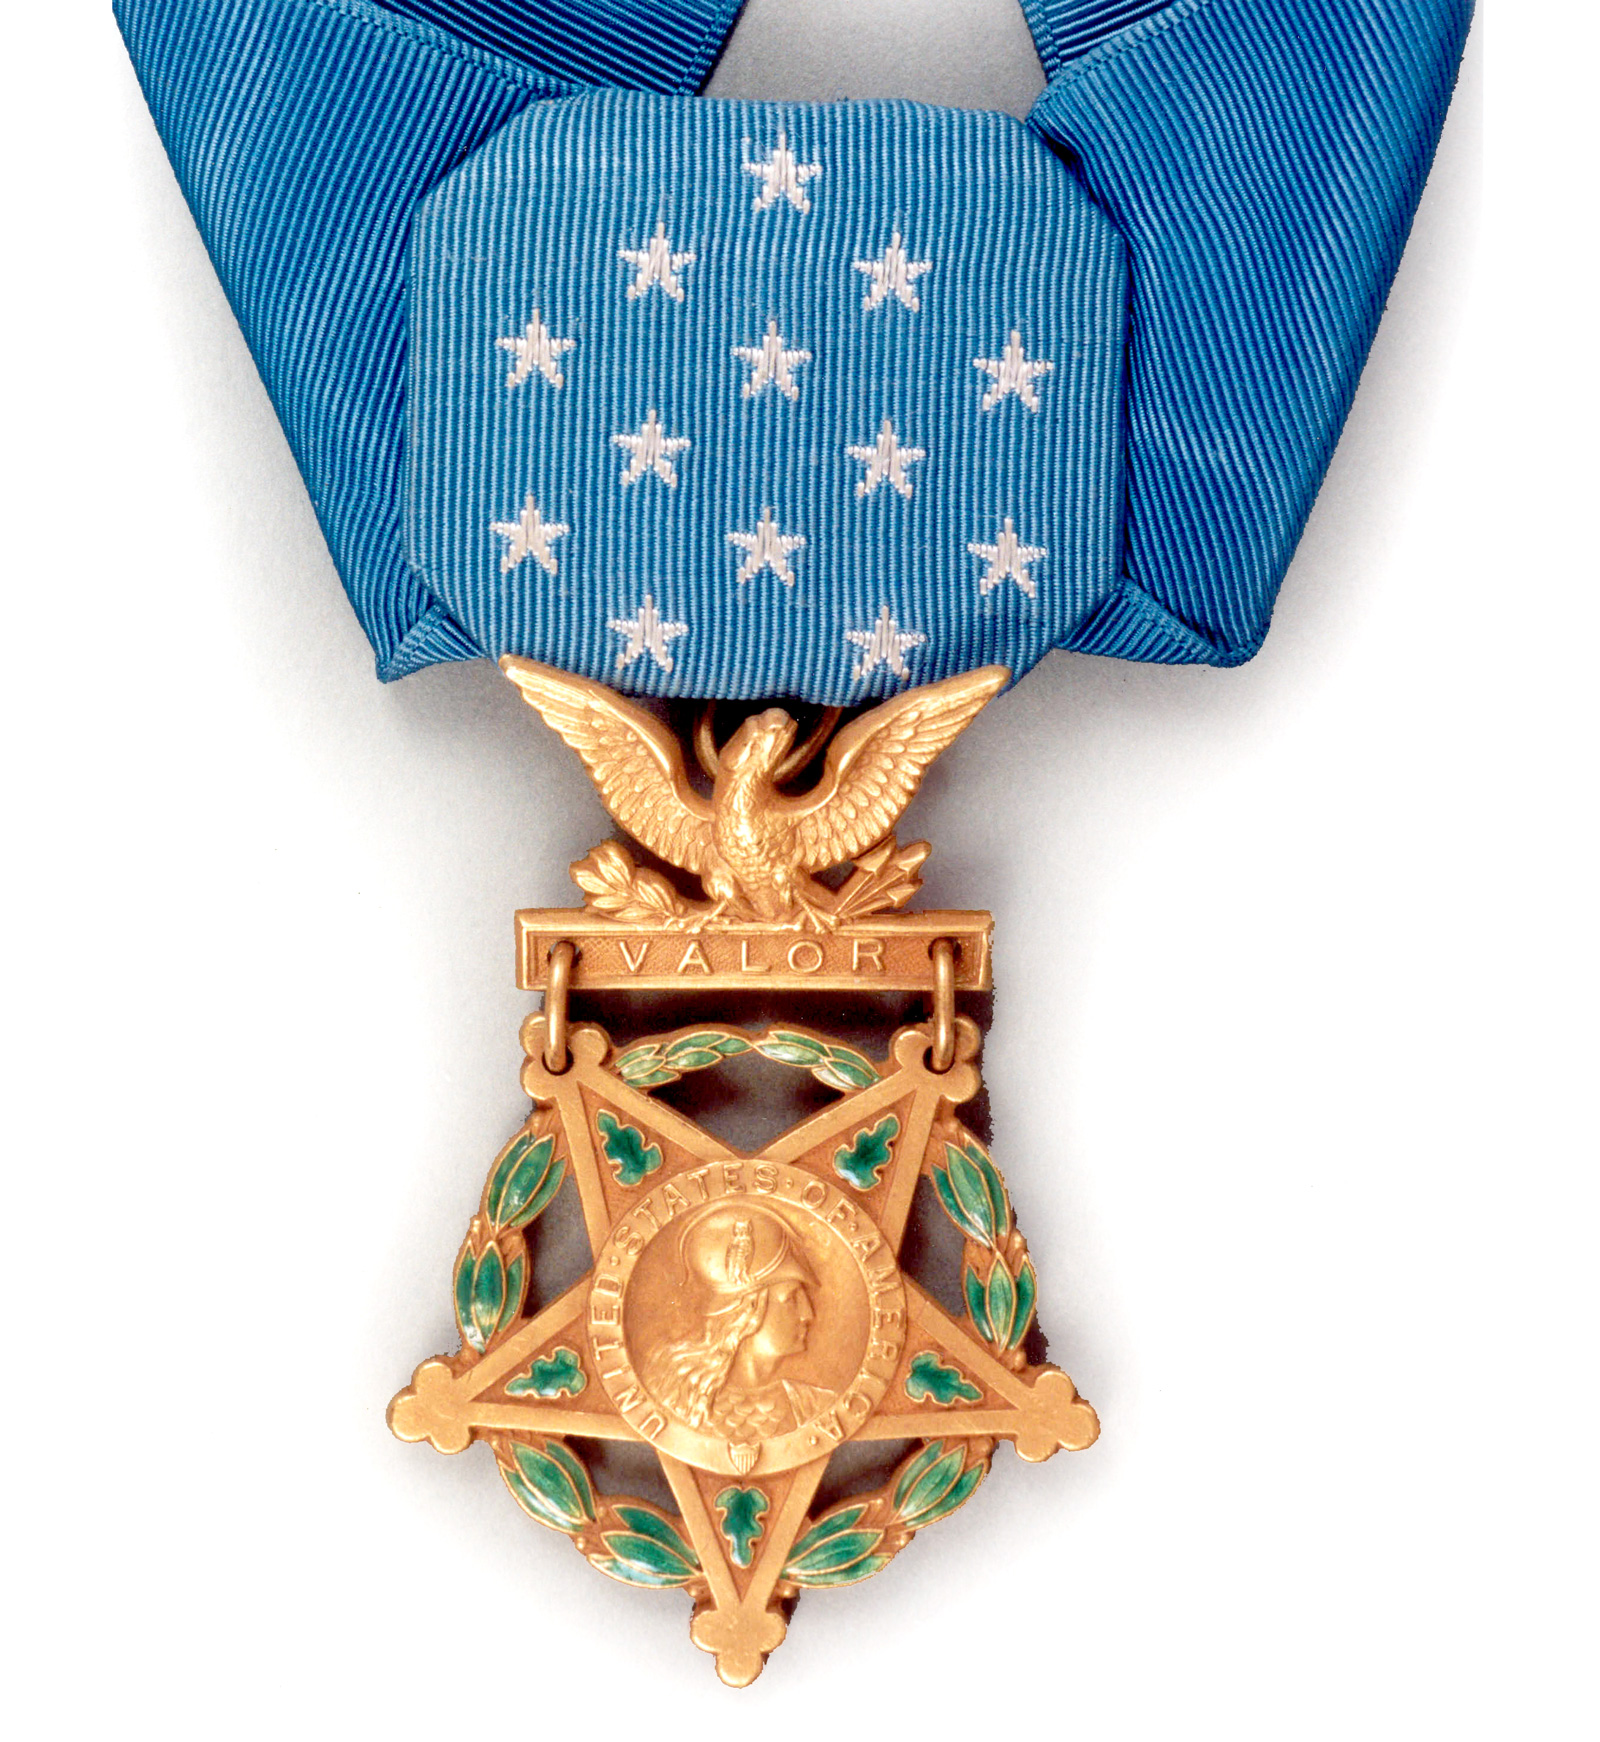 LOST TO HISTORY FOR 94 YEARS, MEDAL OF HONOR RECIPIENT TO